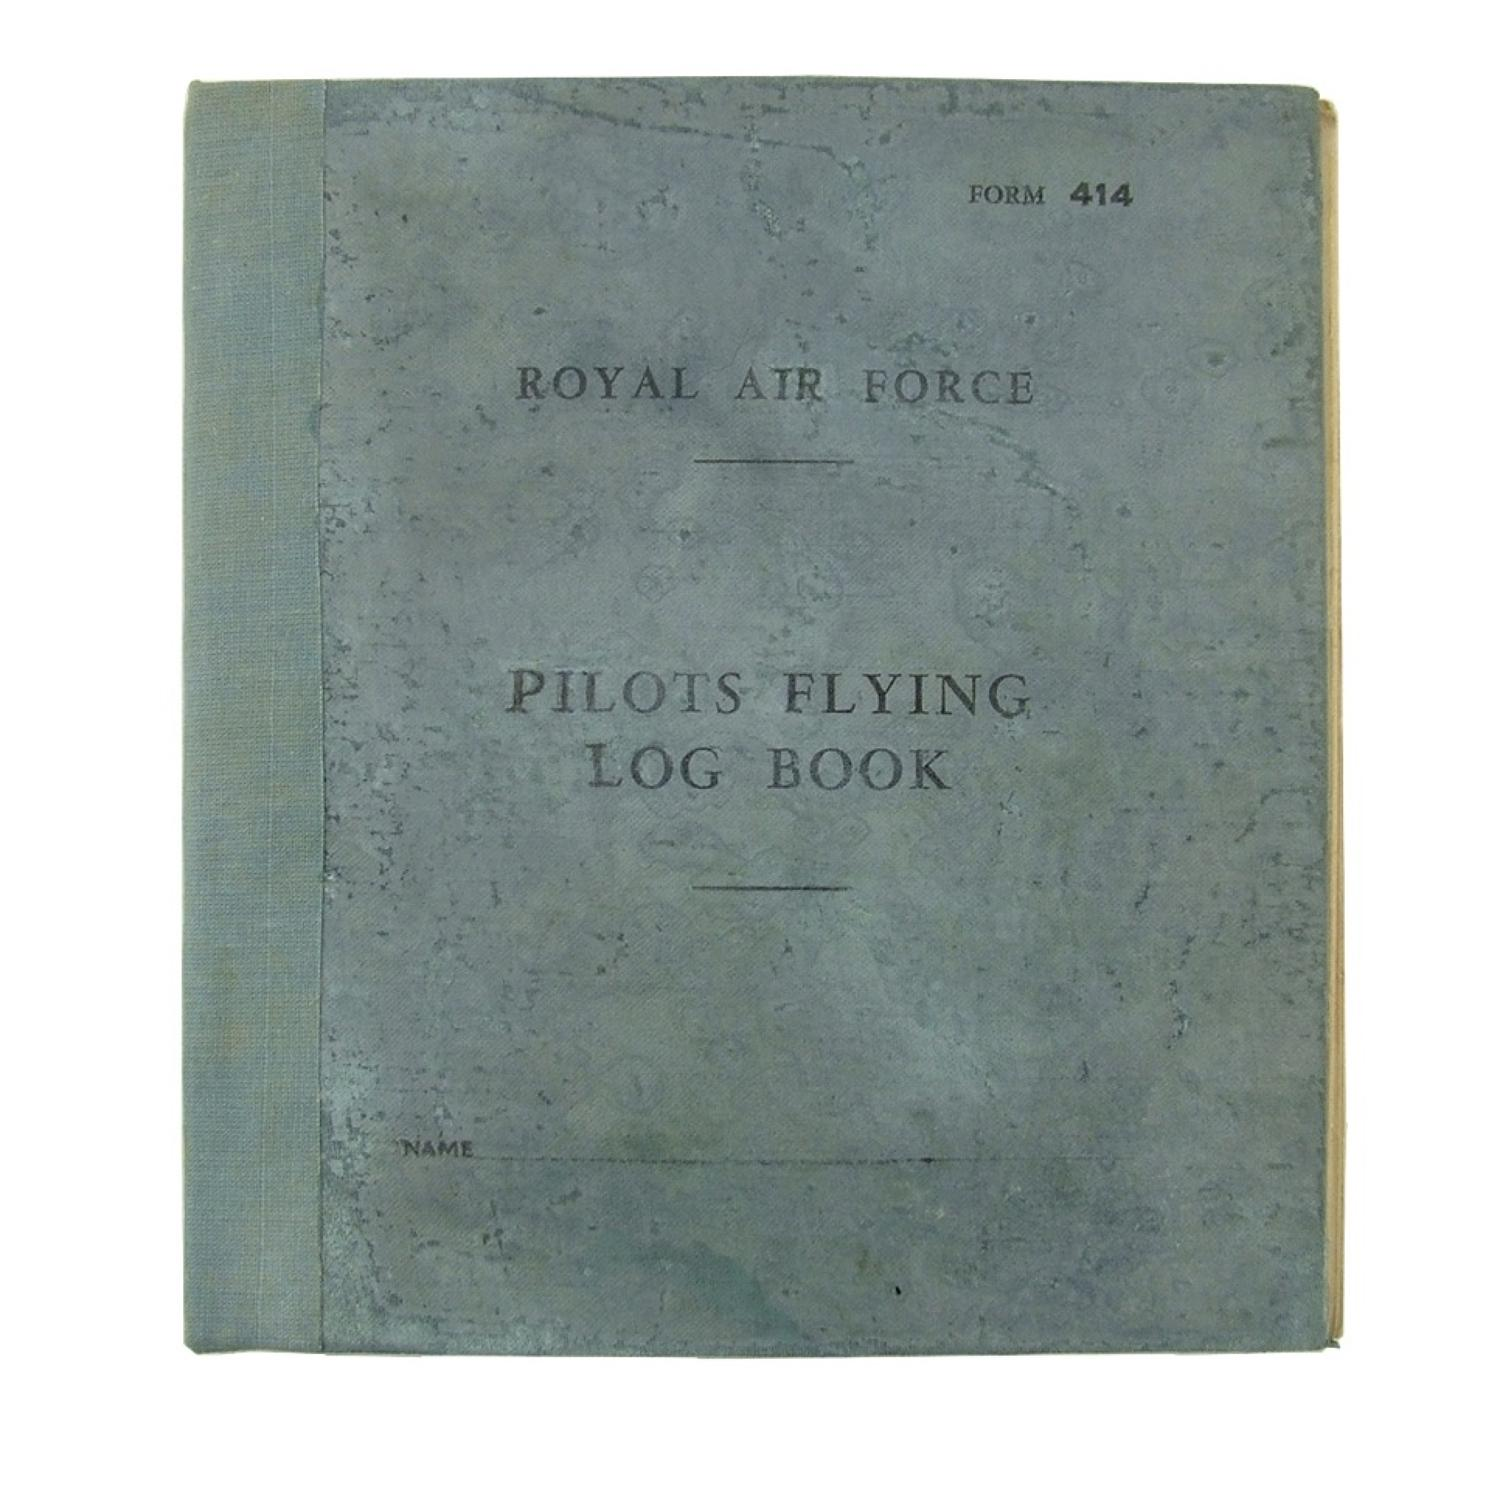 RAF pilot's flying log book